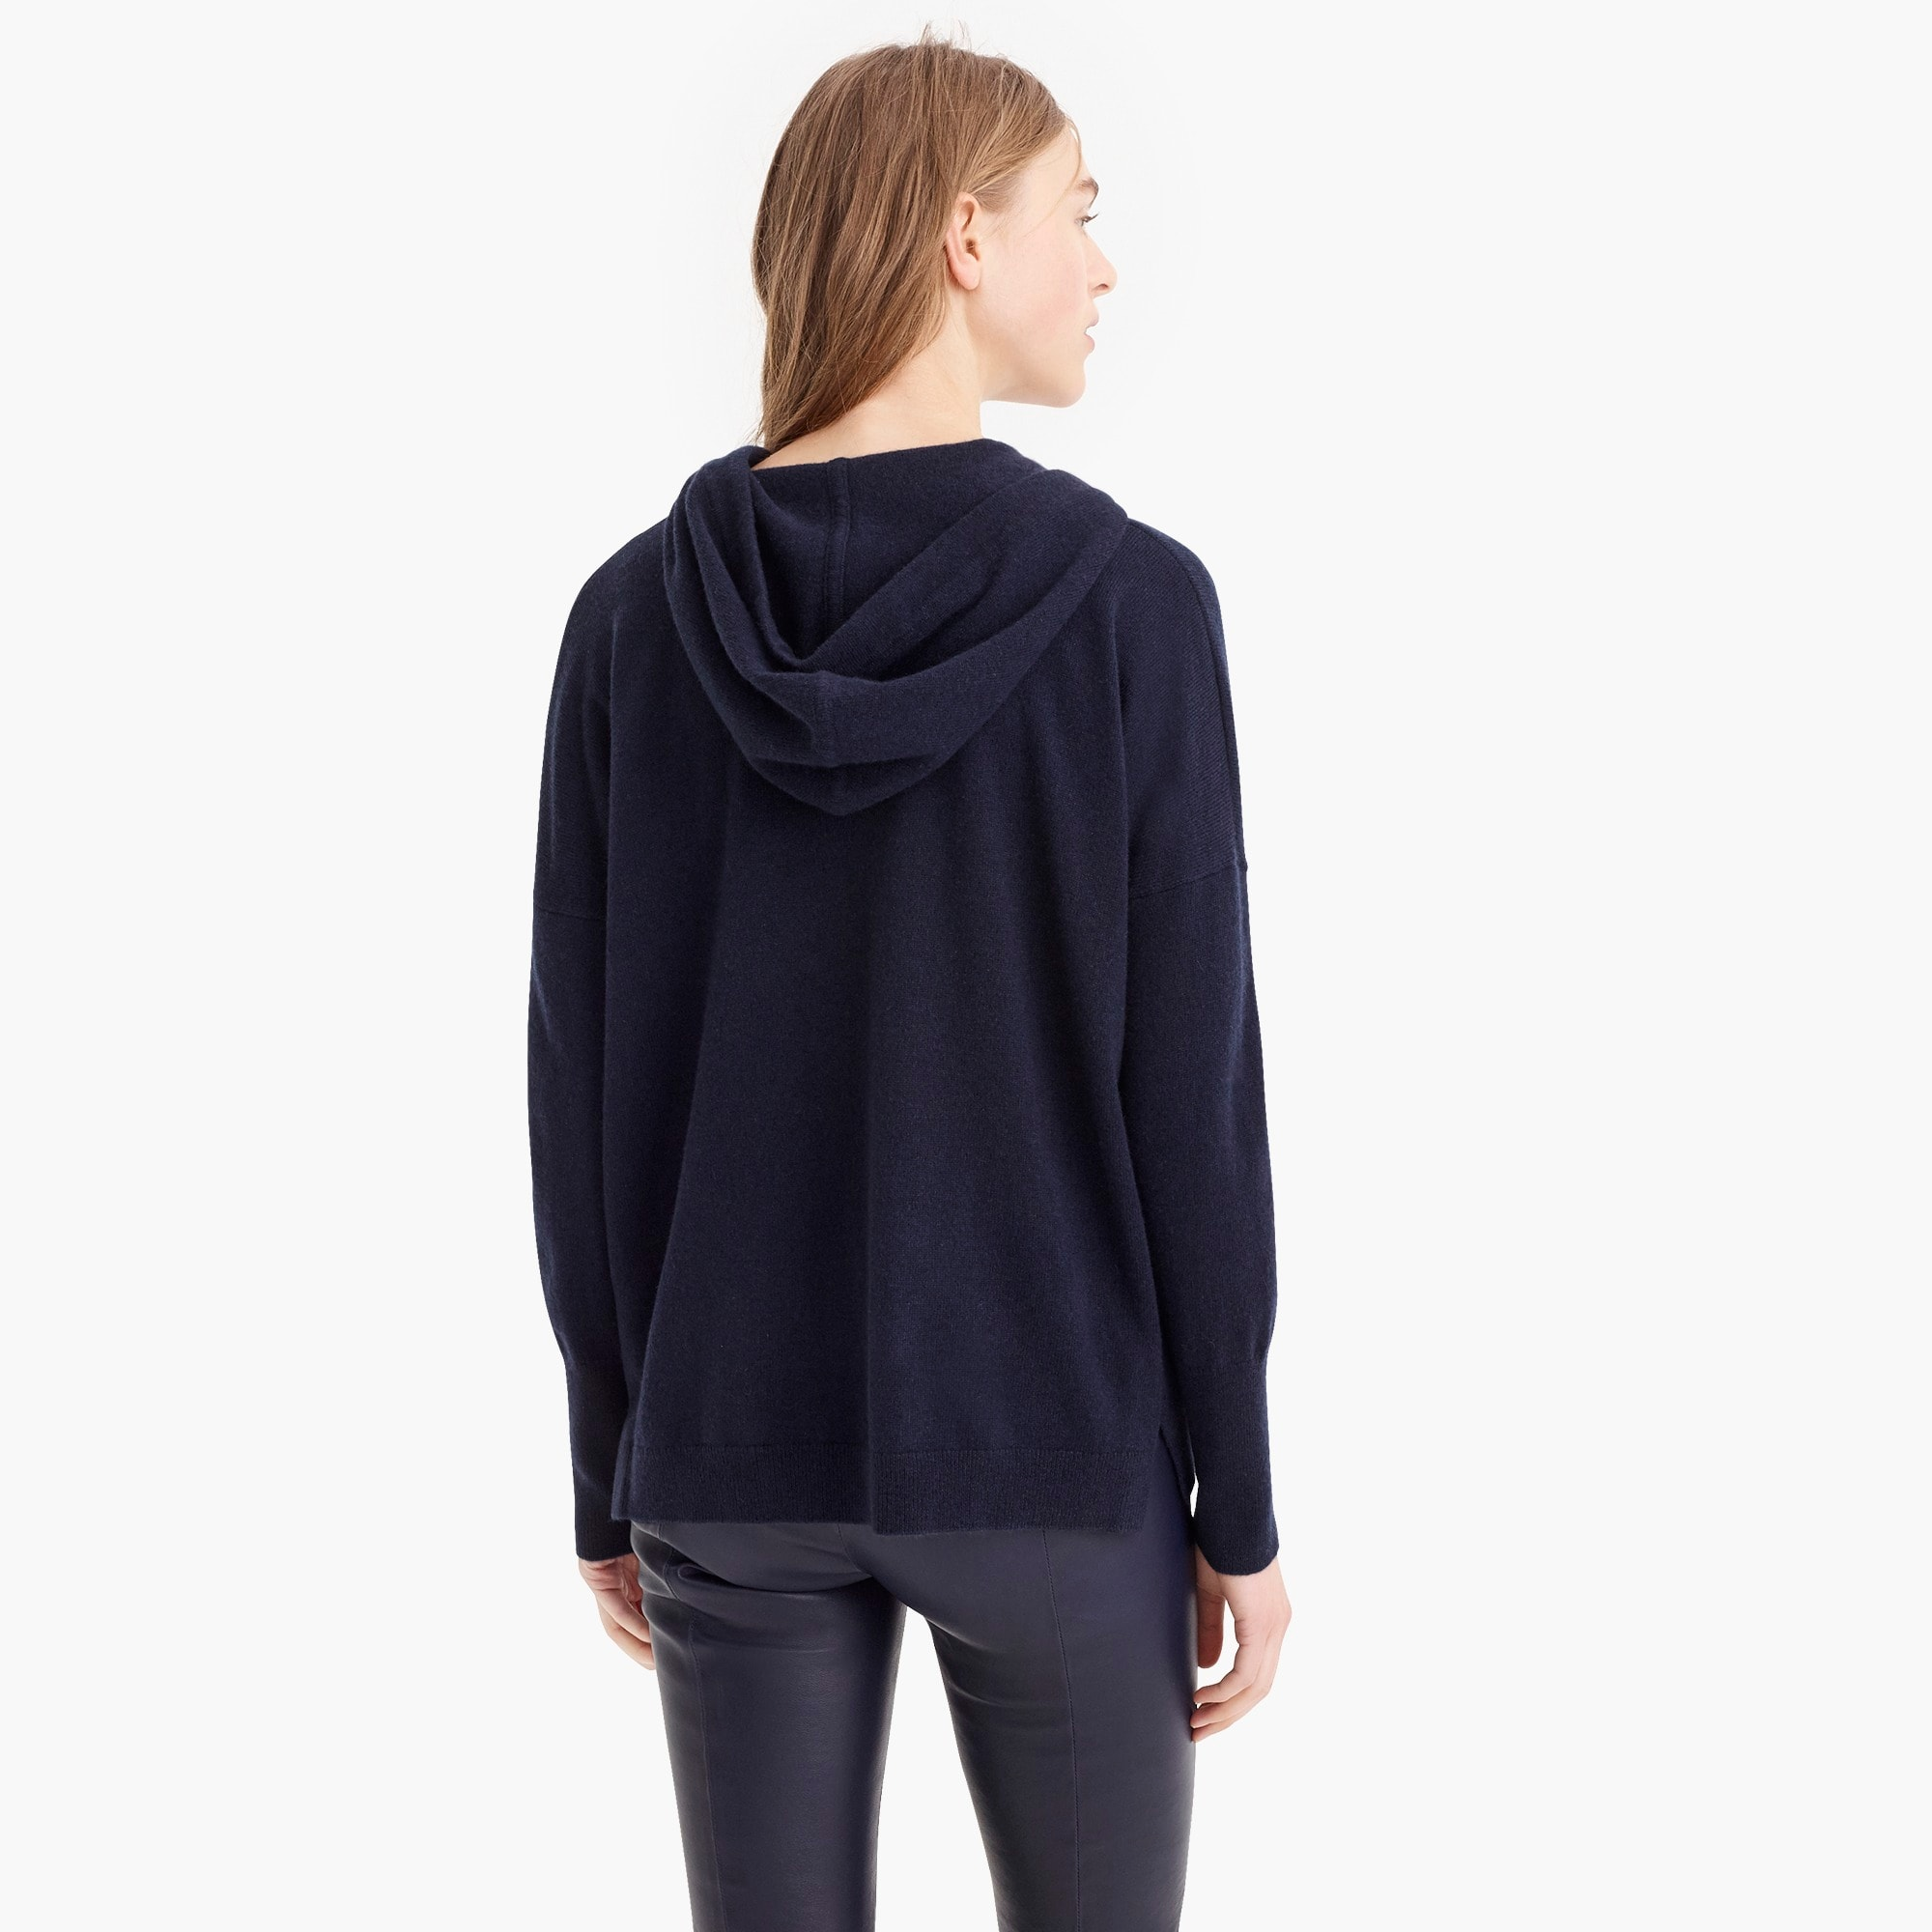 Everyday cashmere pullover hoodie sweater